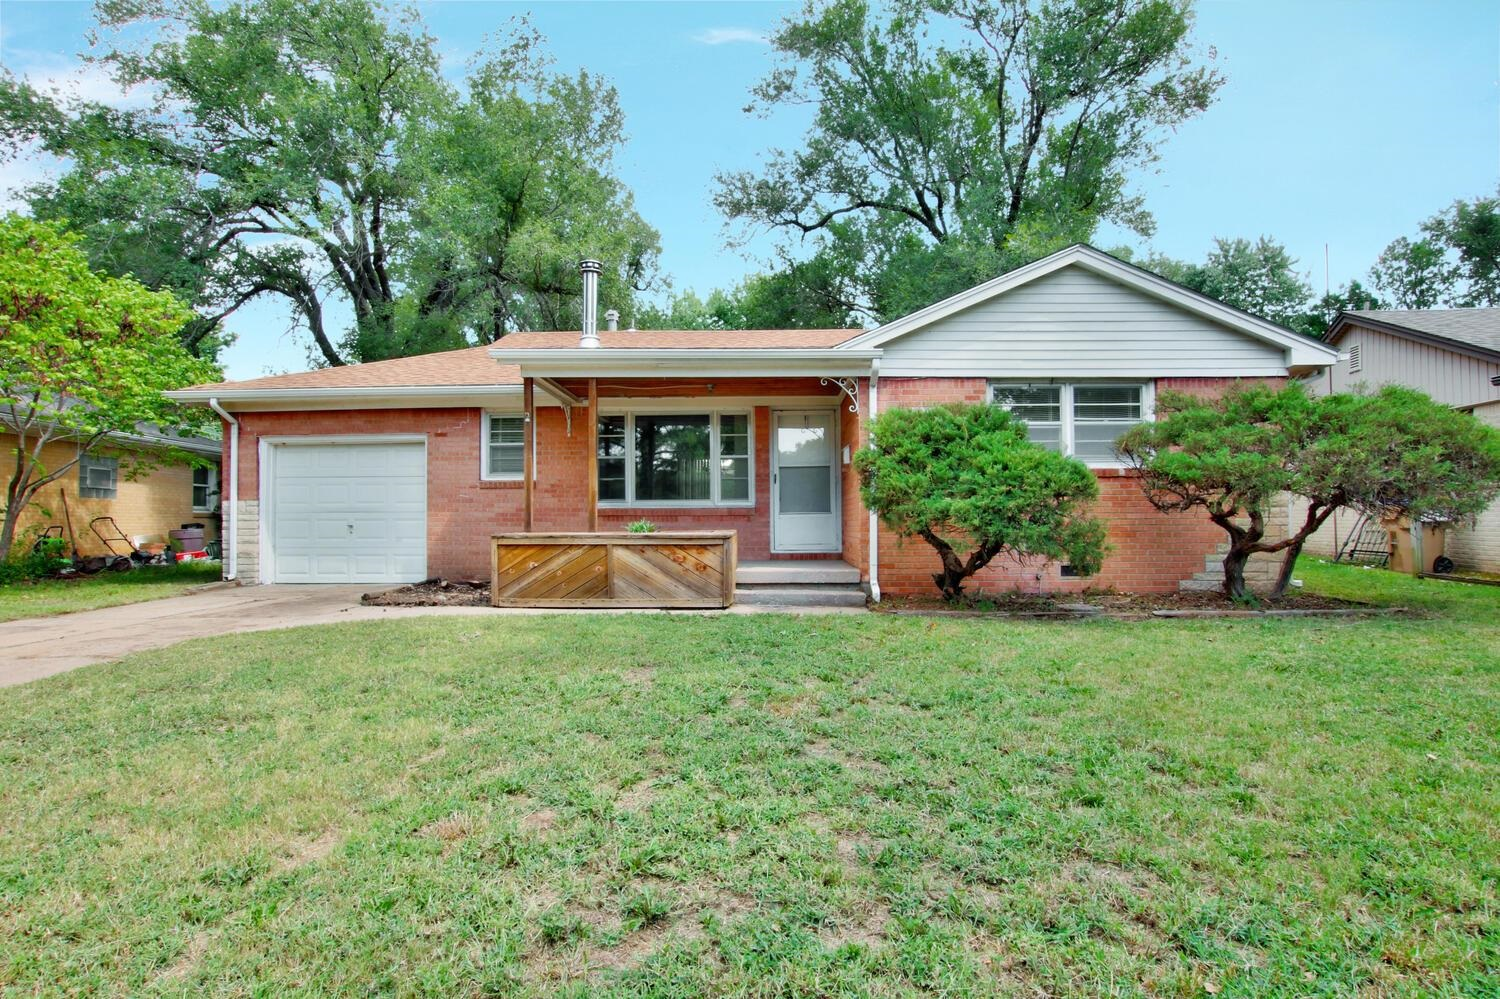 Come see this all brick ranch home right in the heart of Derby! Home includes a spacious living area